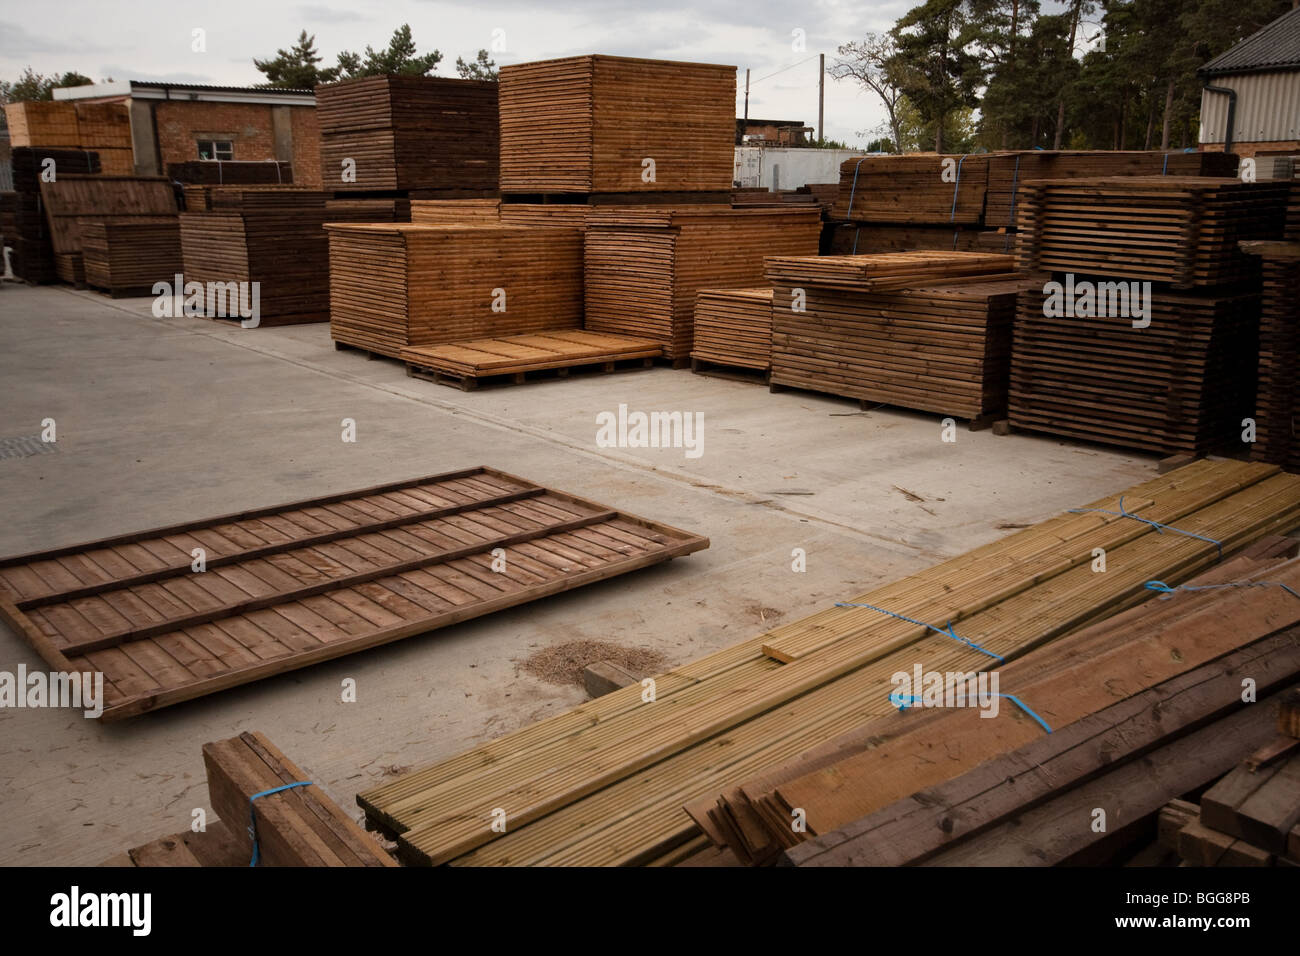 Modern treated wooden fencing in stacks at timber Merchants, England - Stock Image